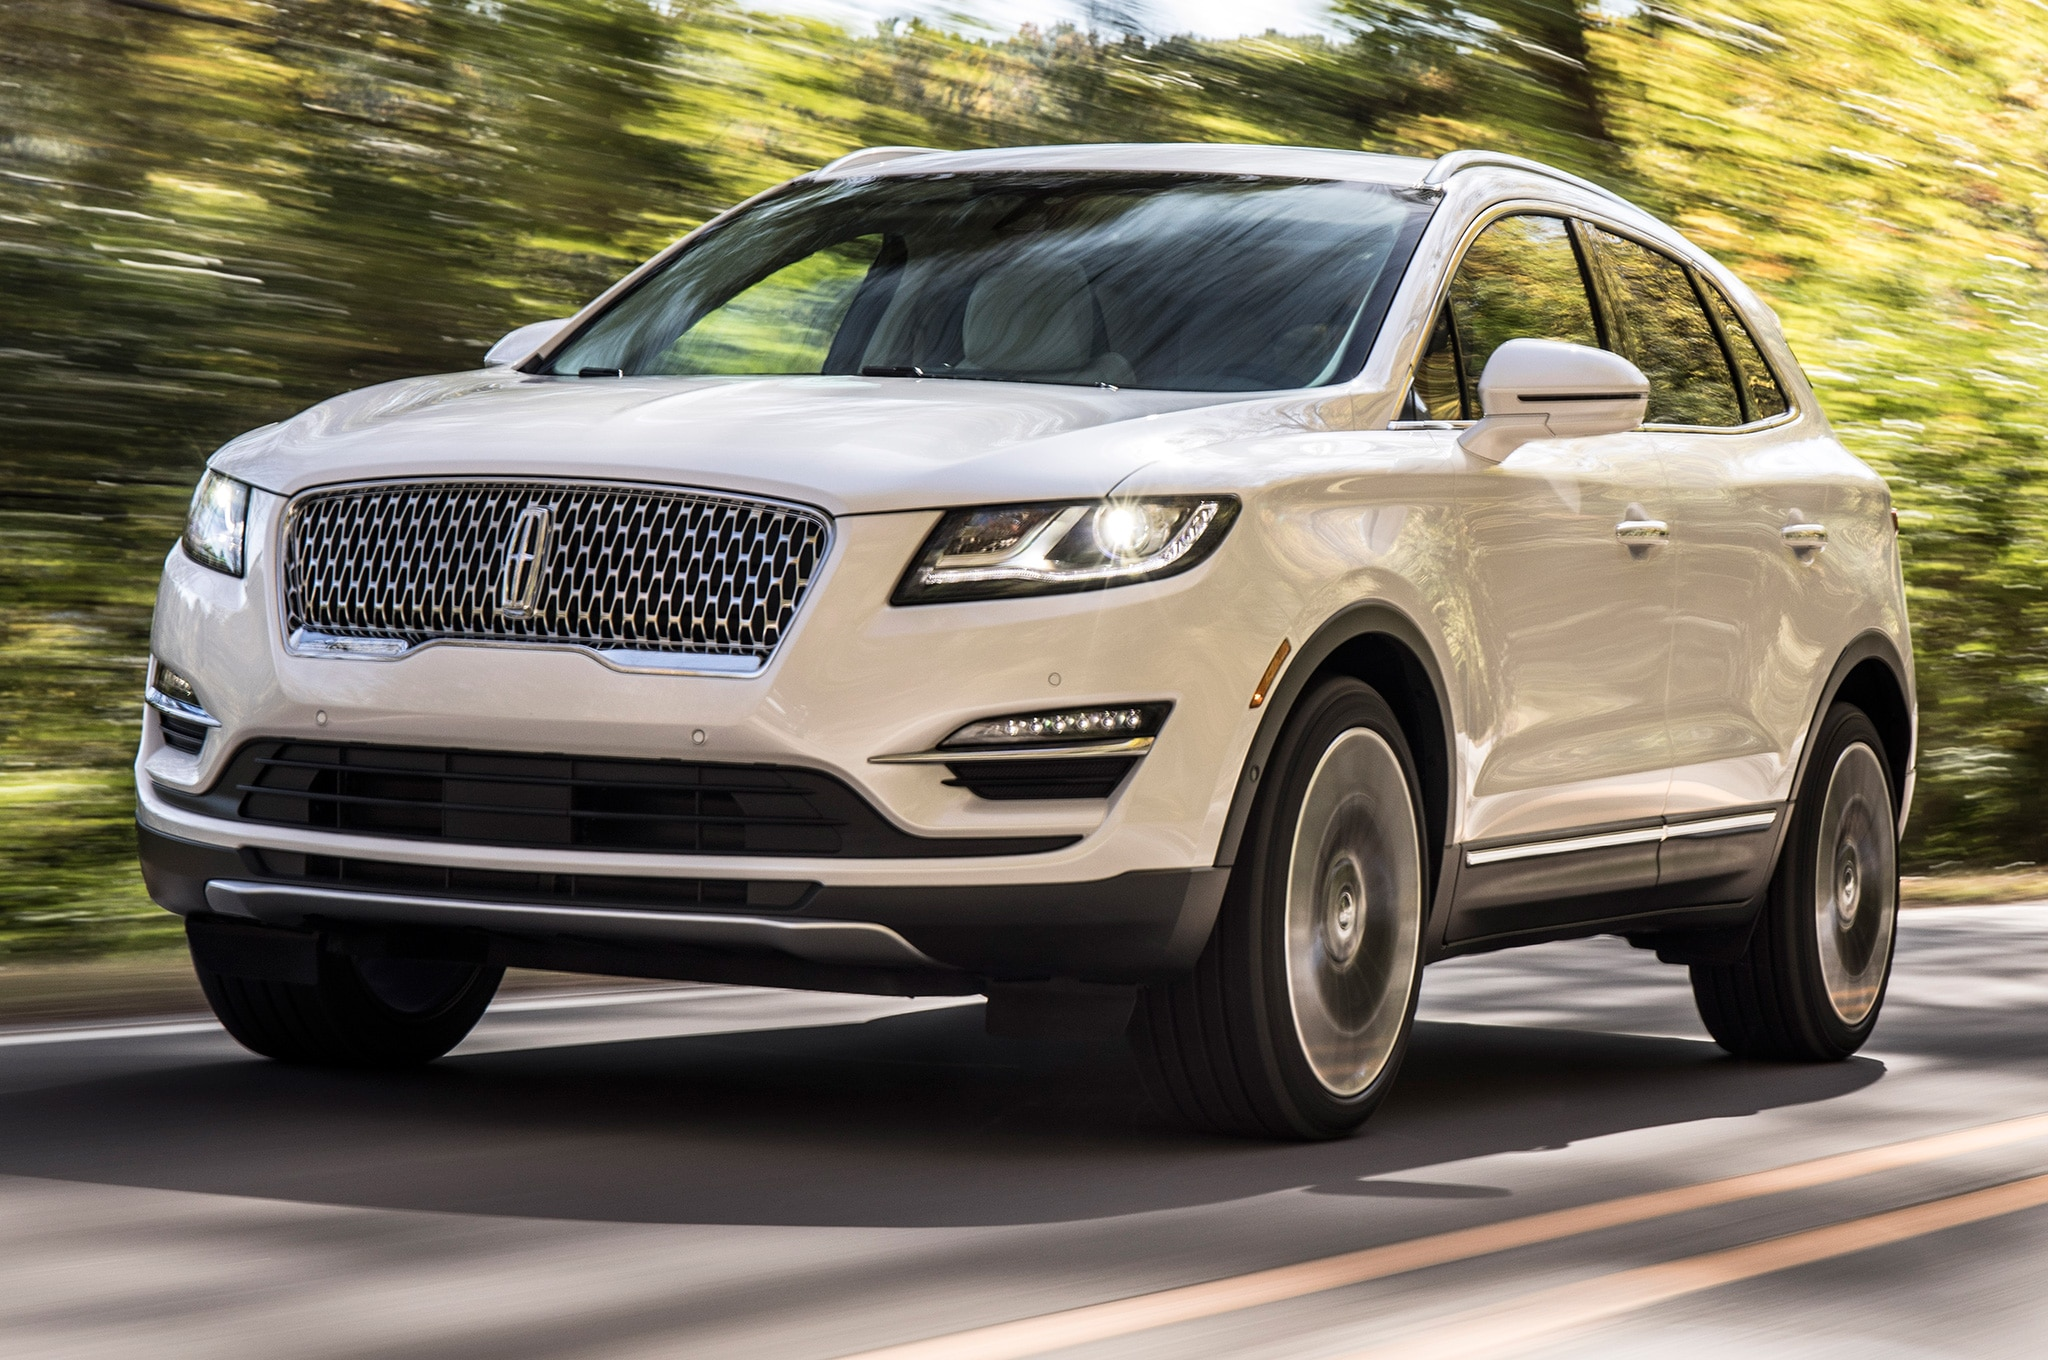 http://st.automobilemag.com/uploads/sites/5/2017/11/2019-Lincoln-MKC.jpg